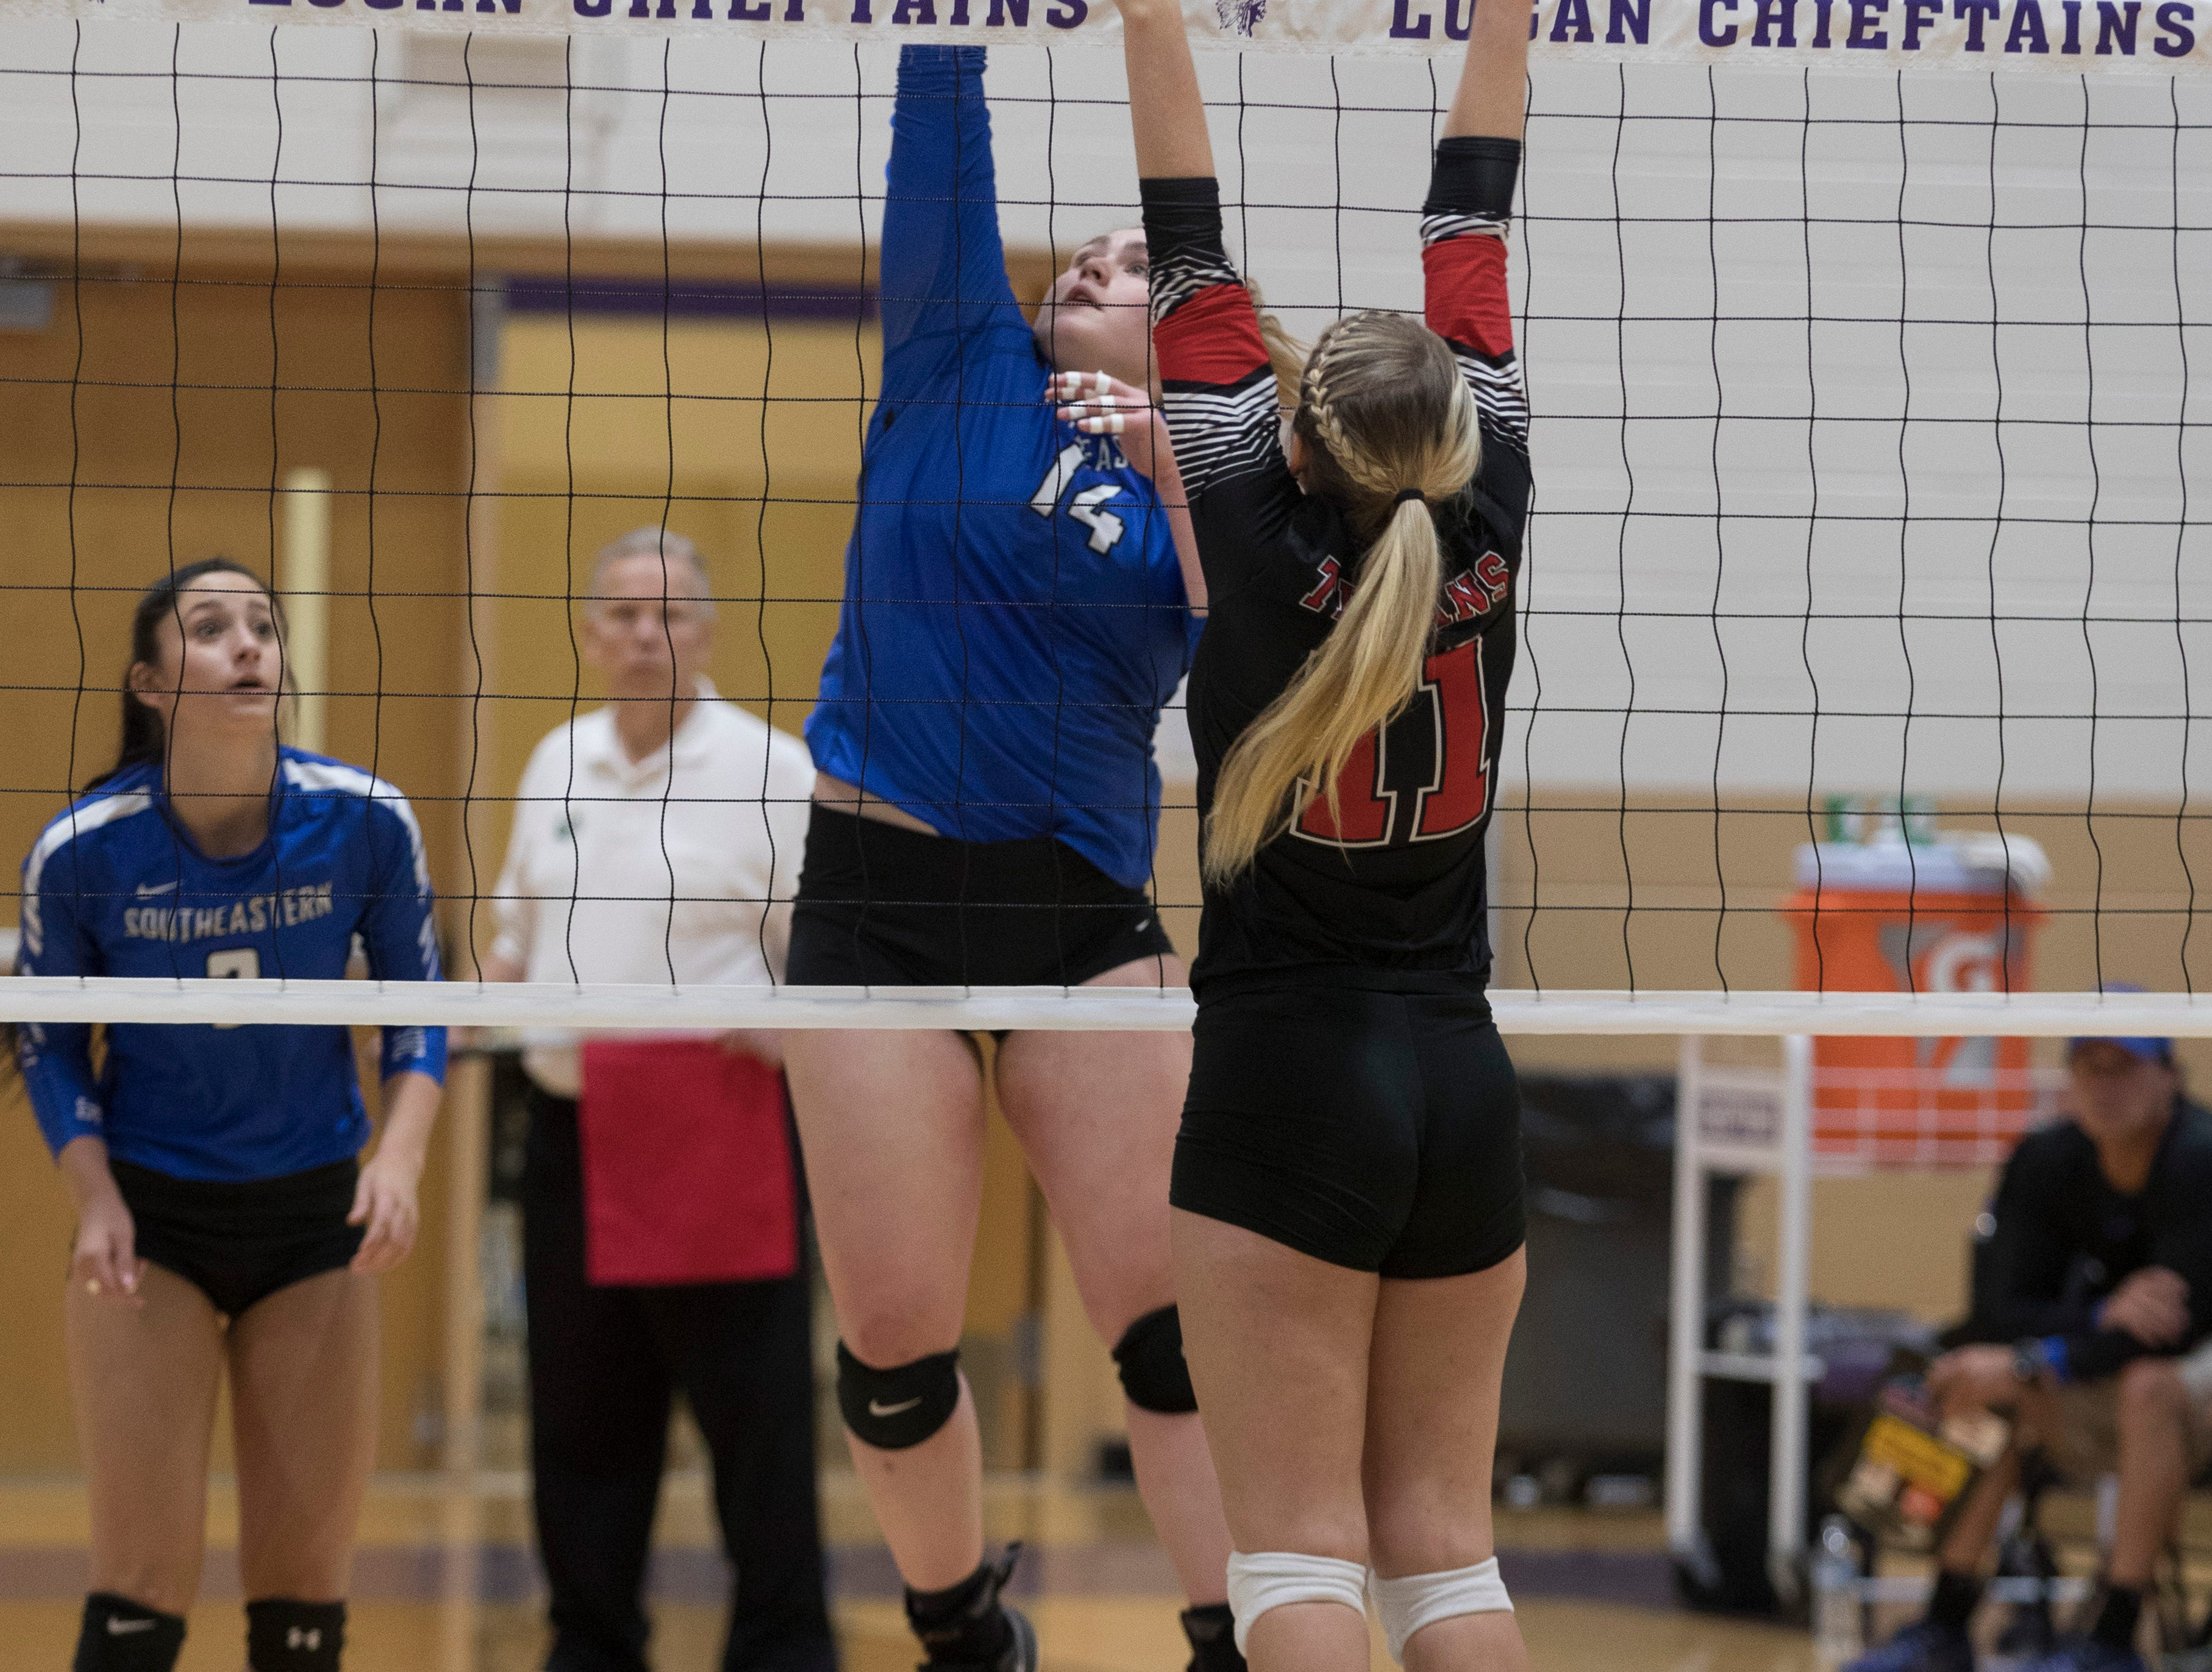 The Southeastern Panthers fell to Tuscarawas Valley 3-1 Saturday afternoon at Logan High School during a Division III volleyball regional final.